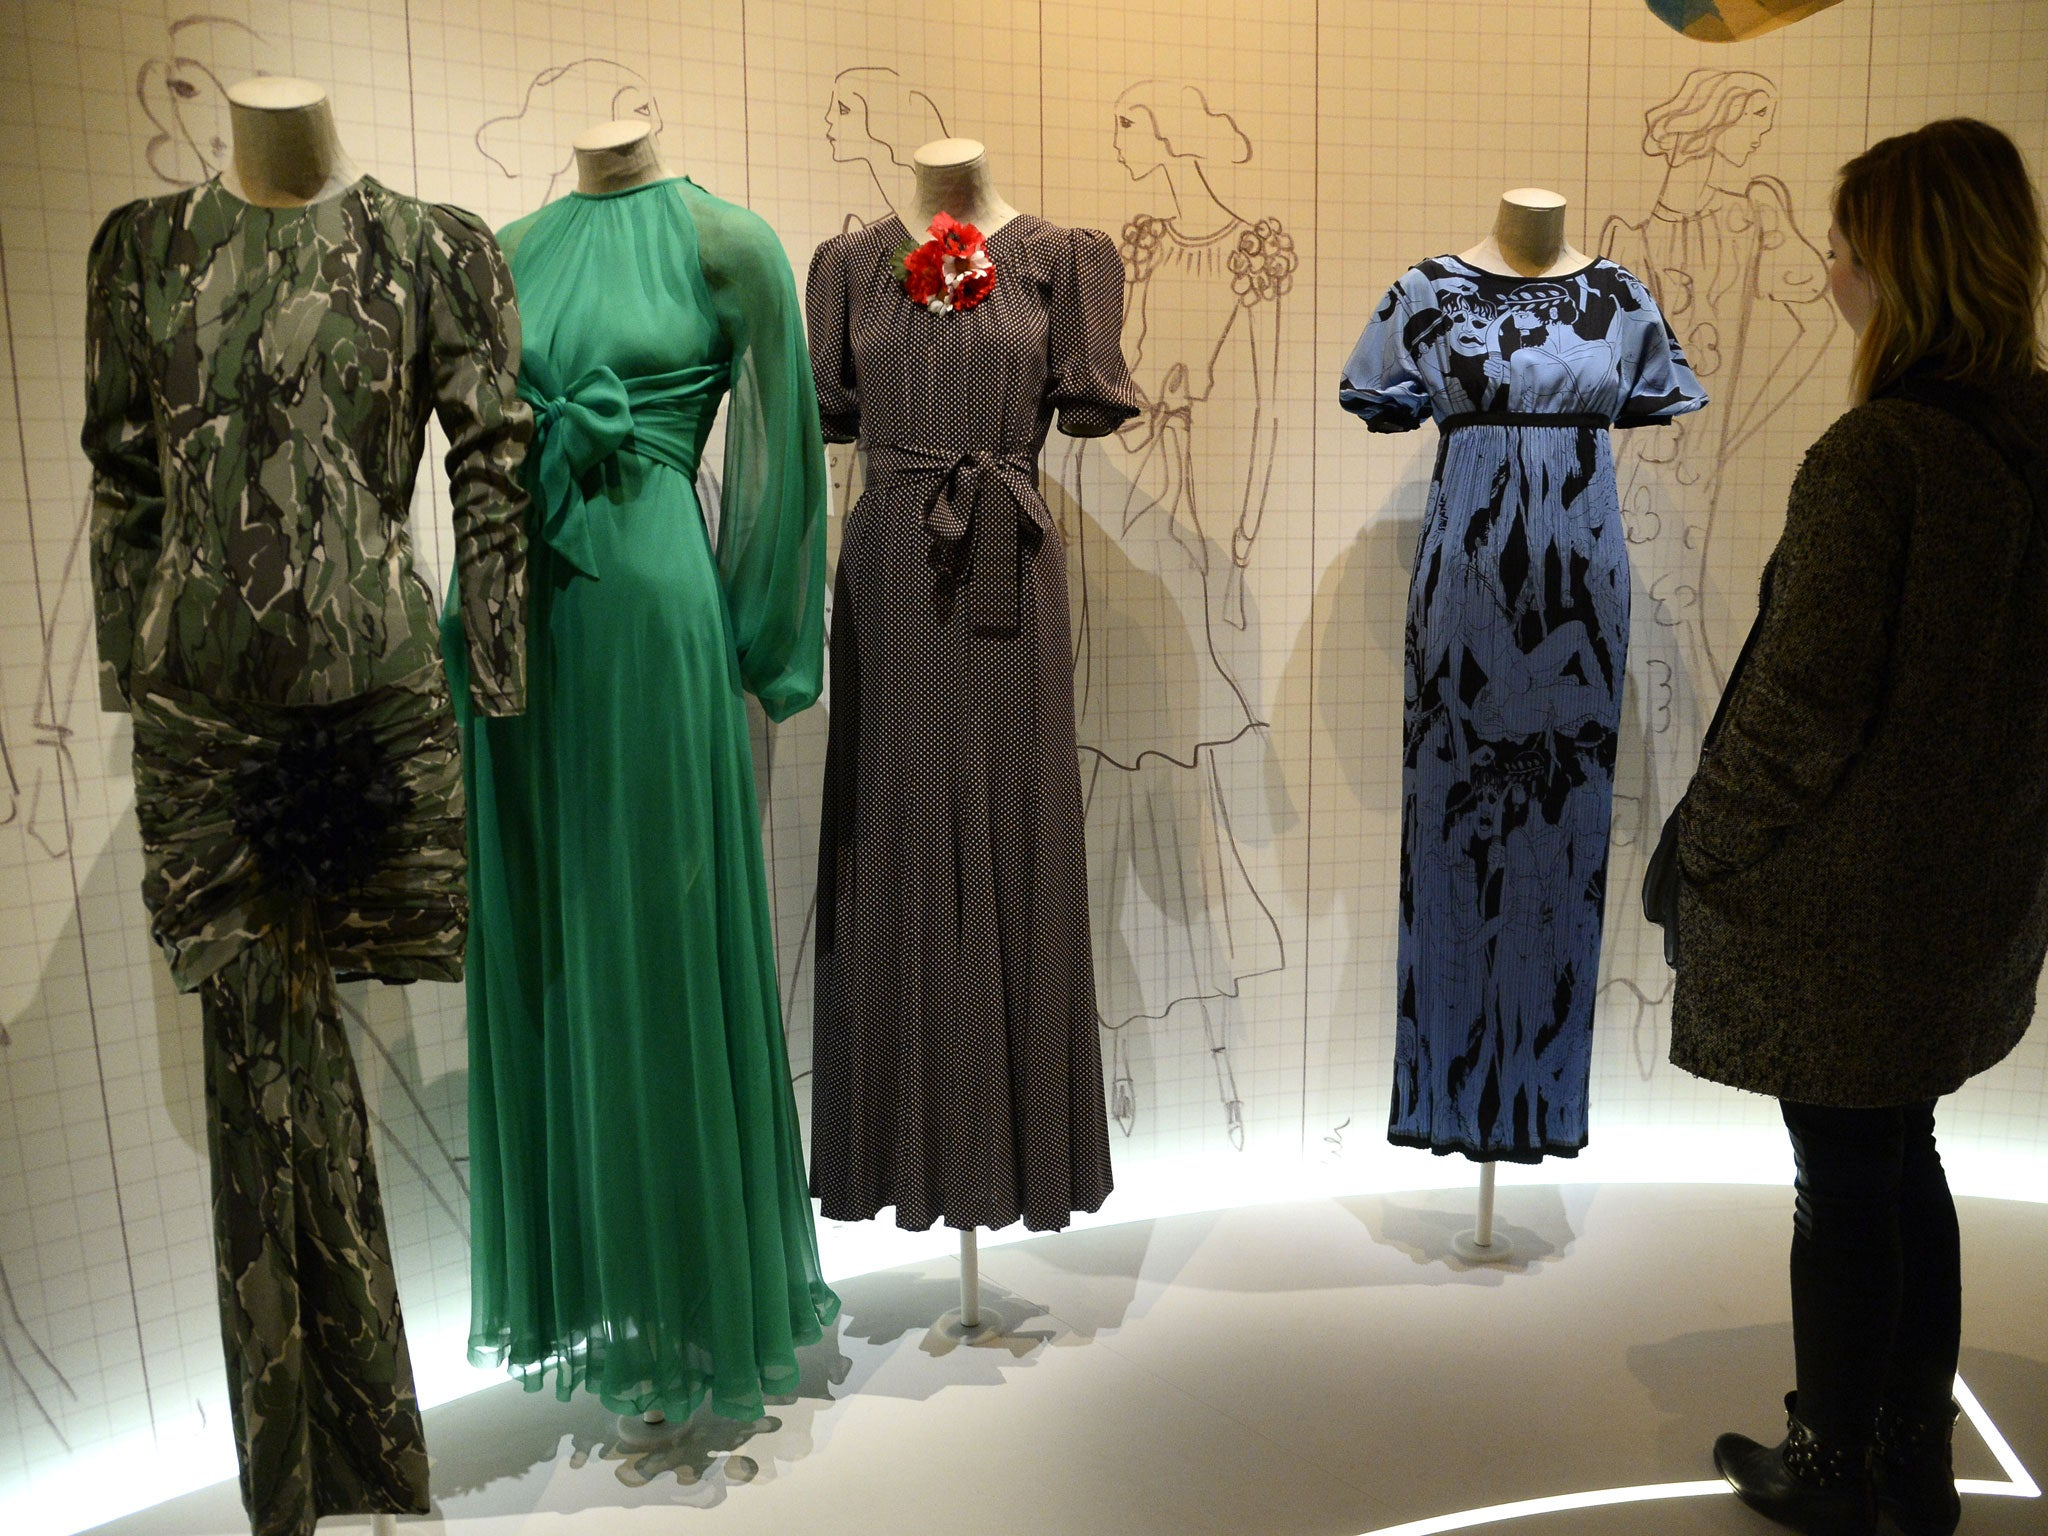 0028377def5 Yves Saint Laurent's 1971 collection shocked the world - but changed the  direction of fashion | The Independent